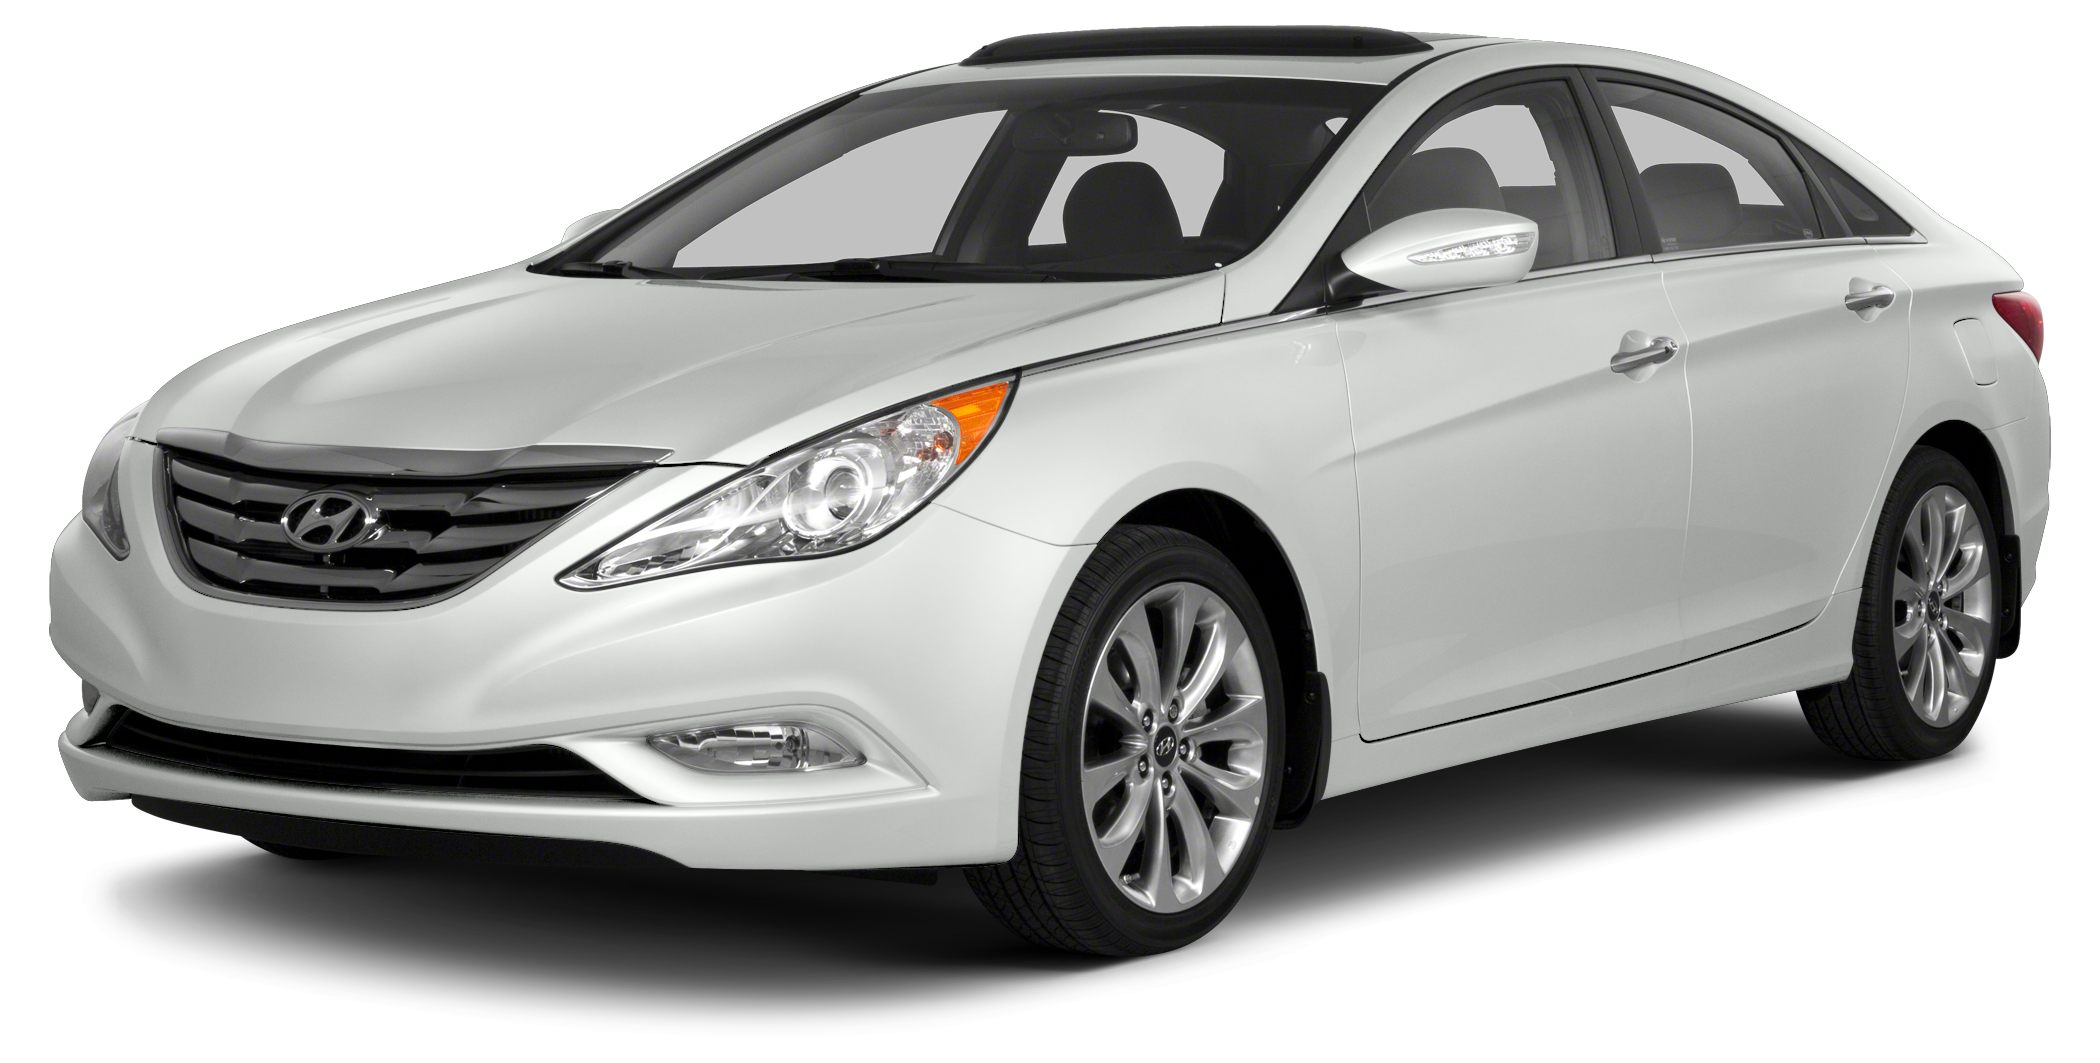 2013 Hyundai Sonata Limited Hyundai Certified And youll get it all With a 24l Moon roof elec